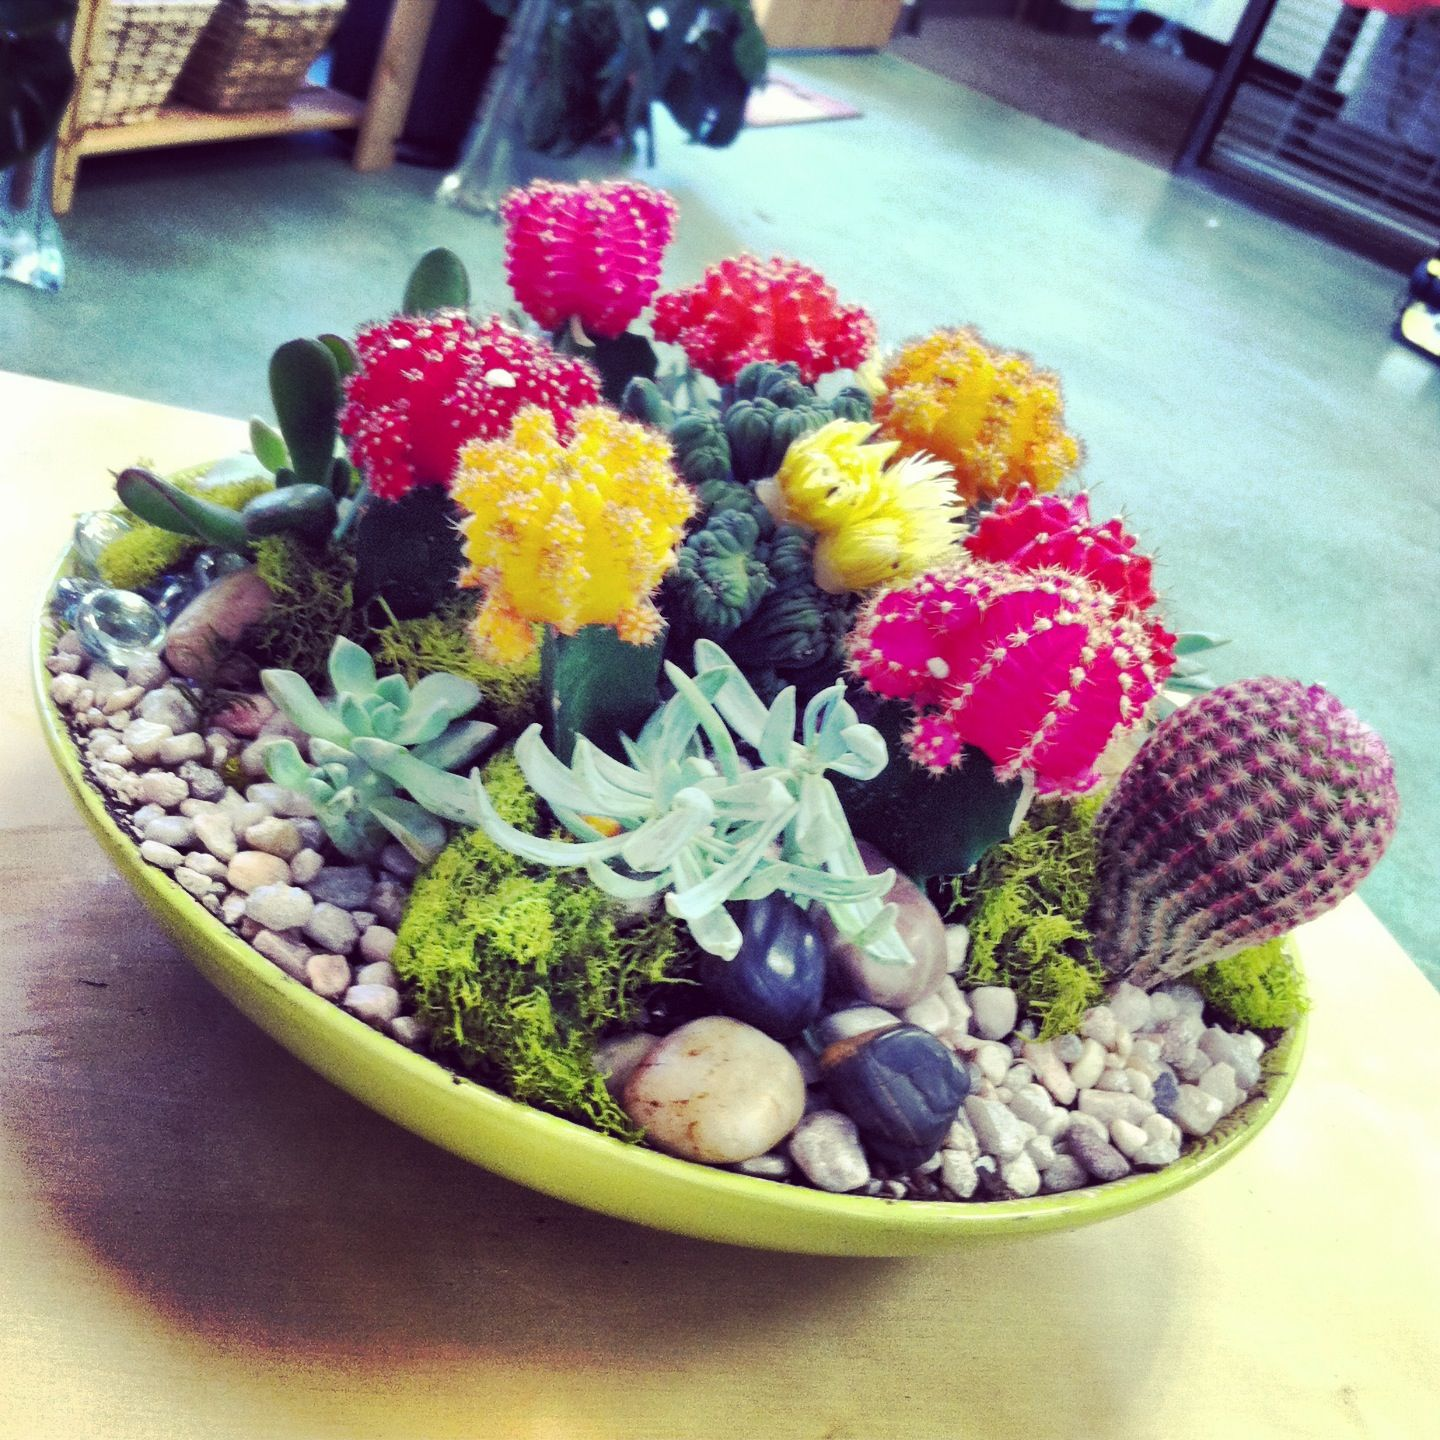 Moon cacti and succulent dish garden In House Garden